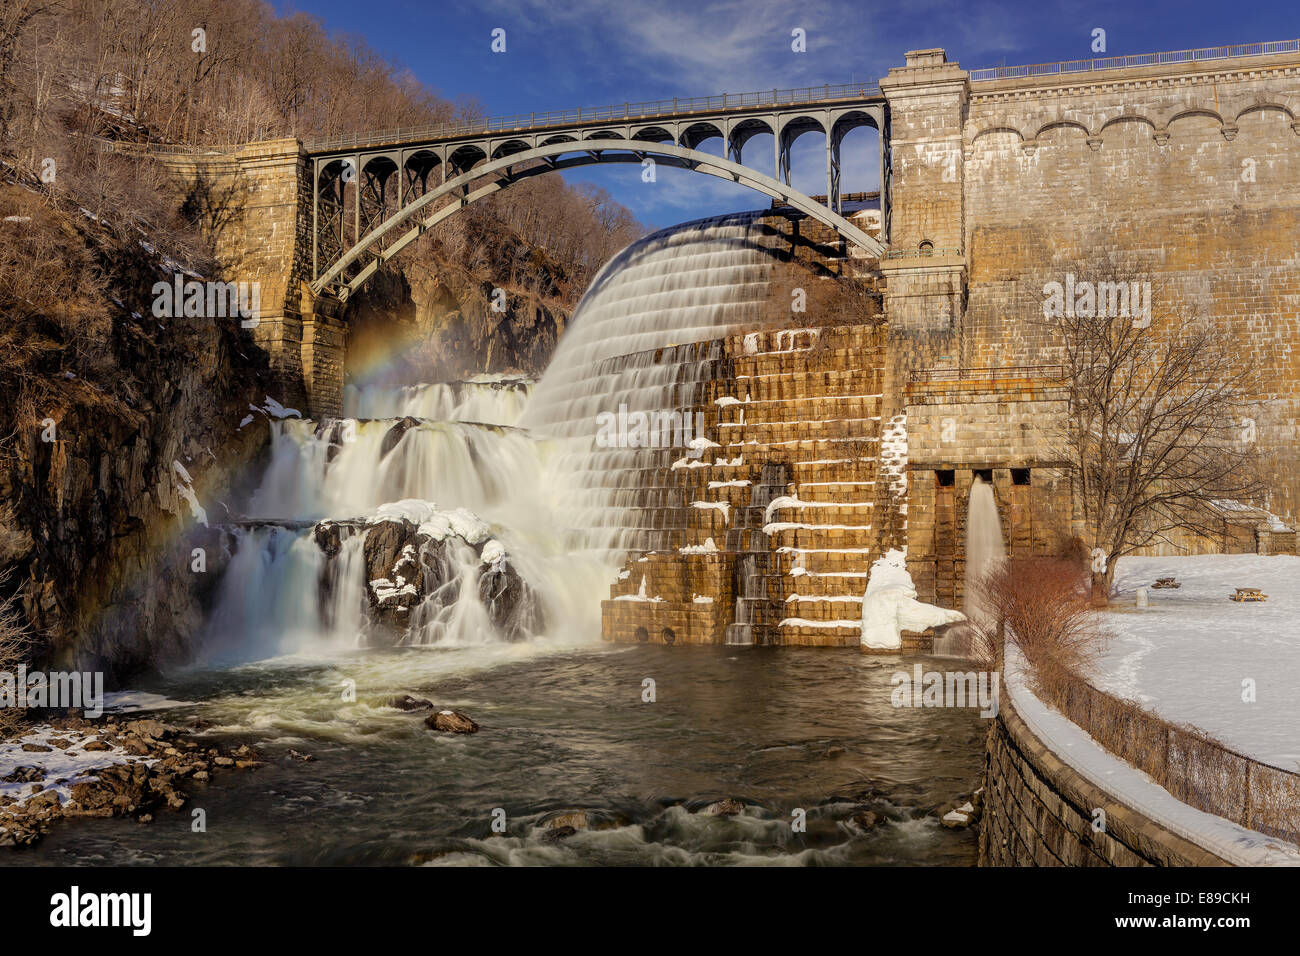 New Croton Dam waterfall also known as the Cornell Dam during a cold winter afternoon with a rainbow over the falls. - Stock Image